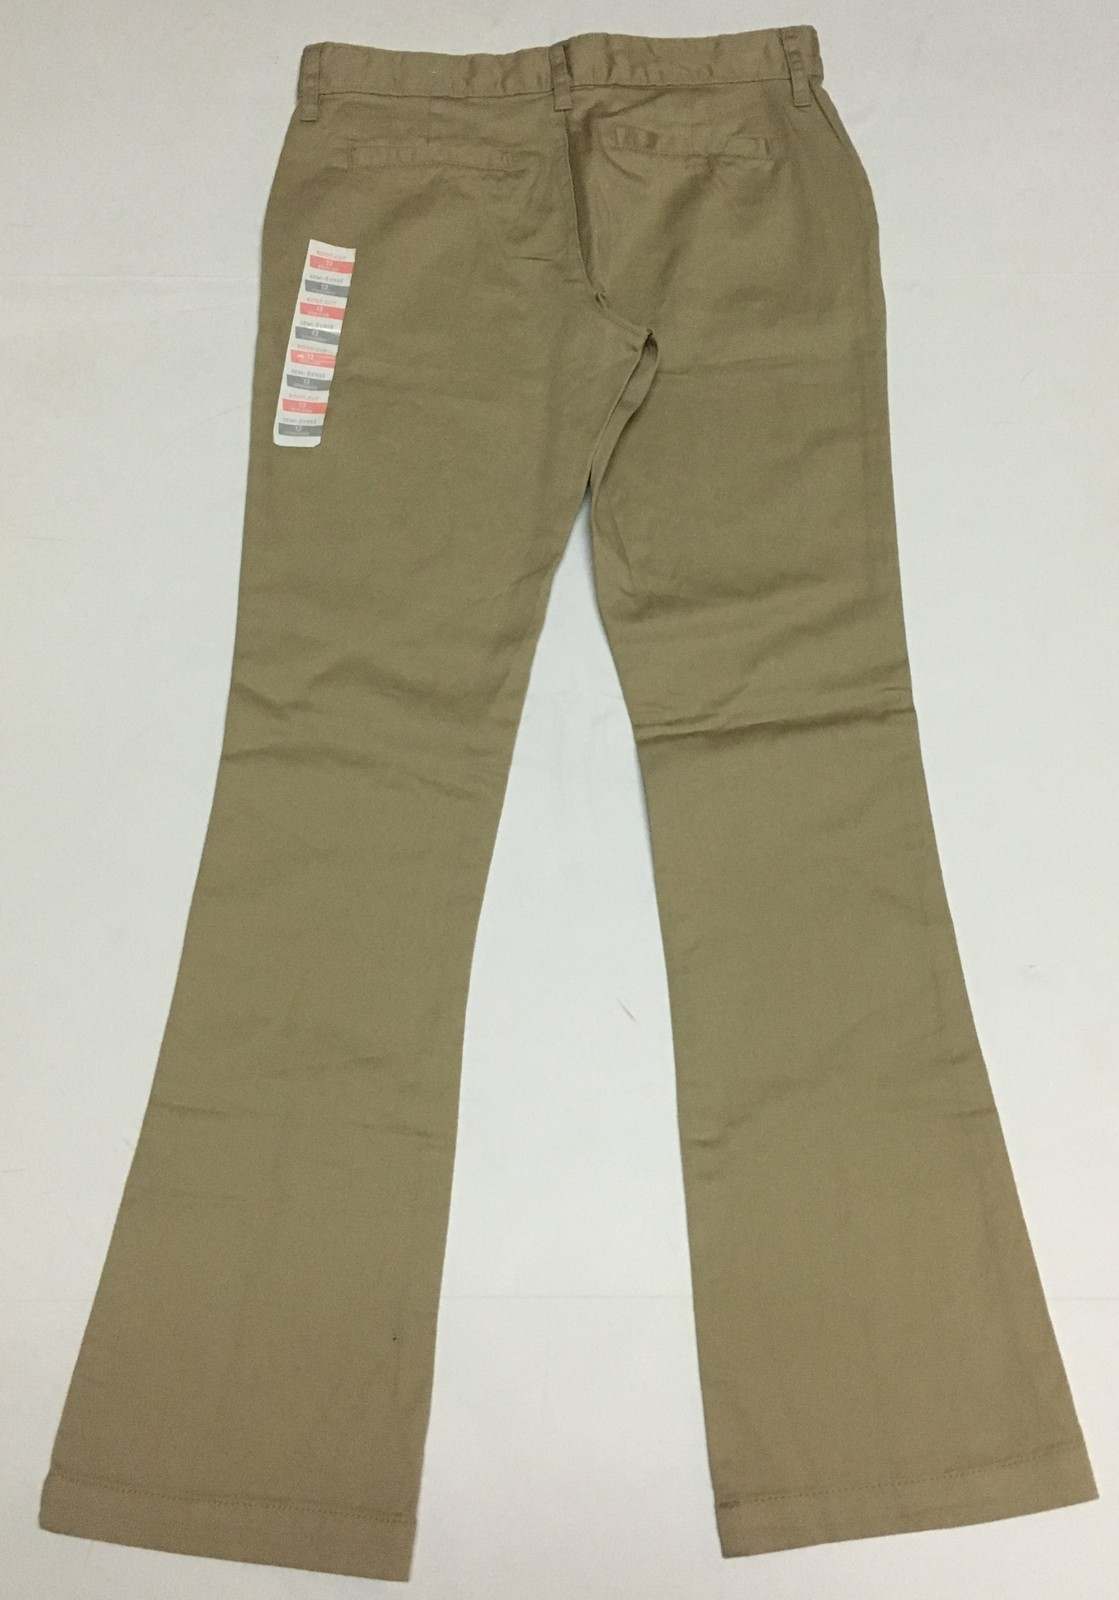 Girl's Old Navy Beige Khaki Pants Sz 12 Boot Cut Youth